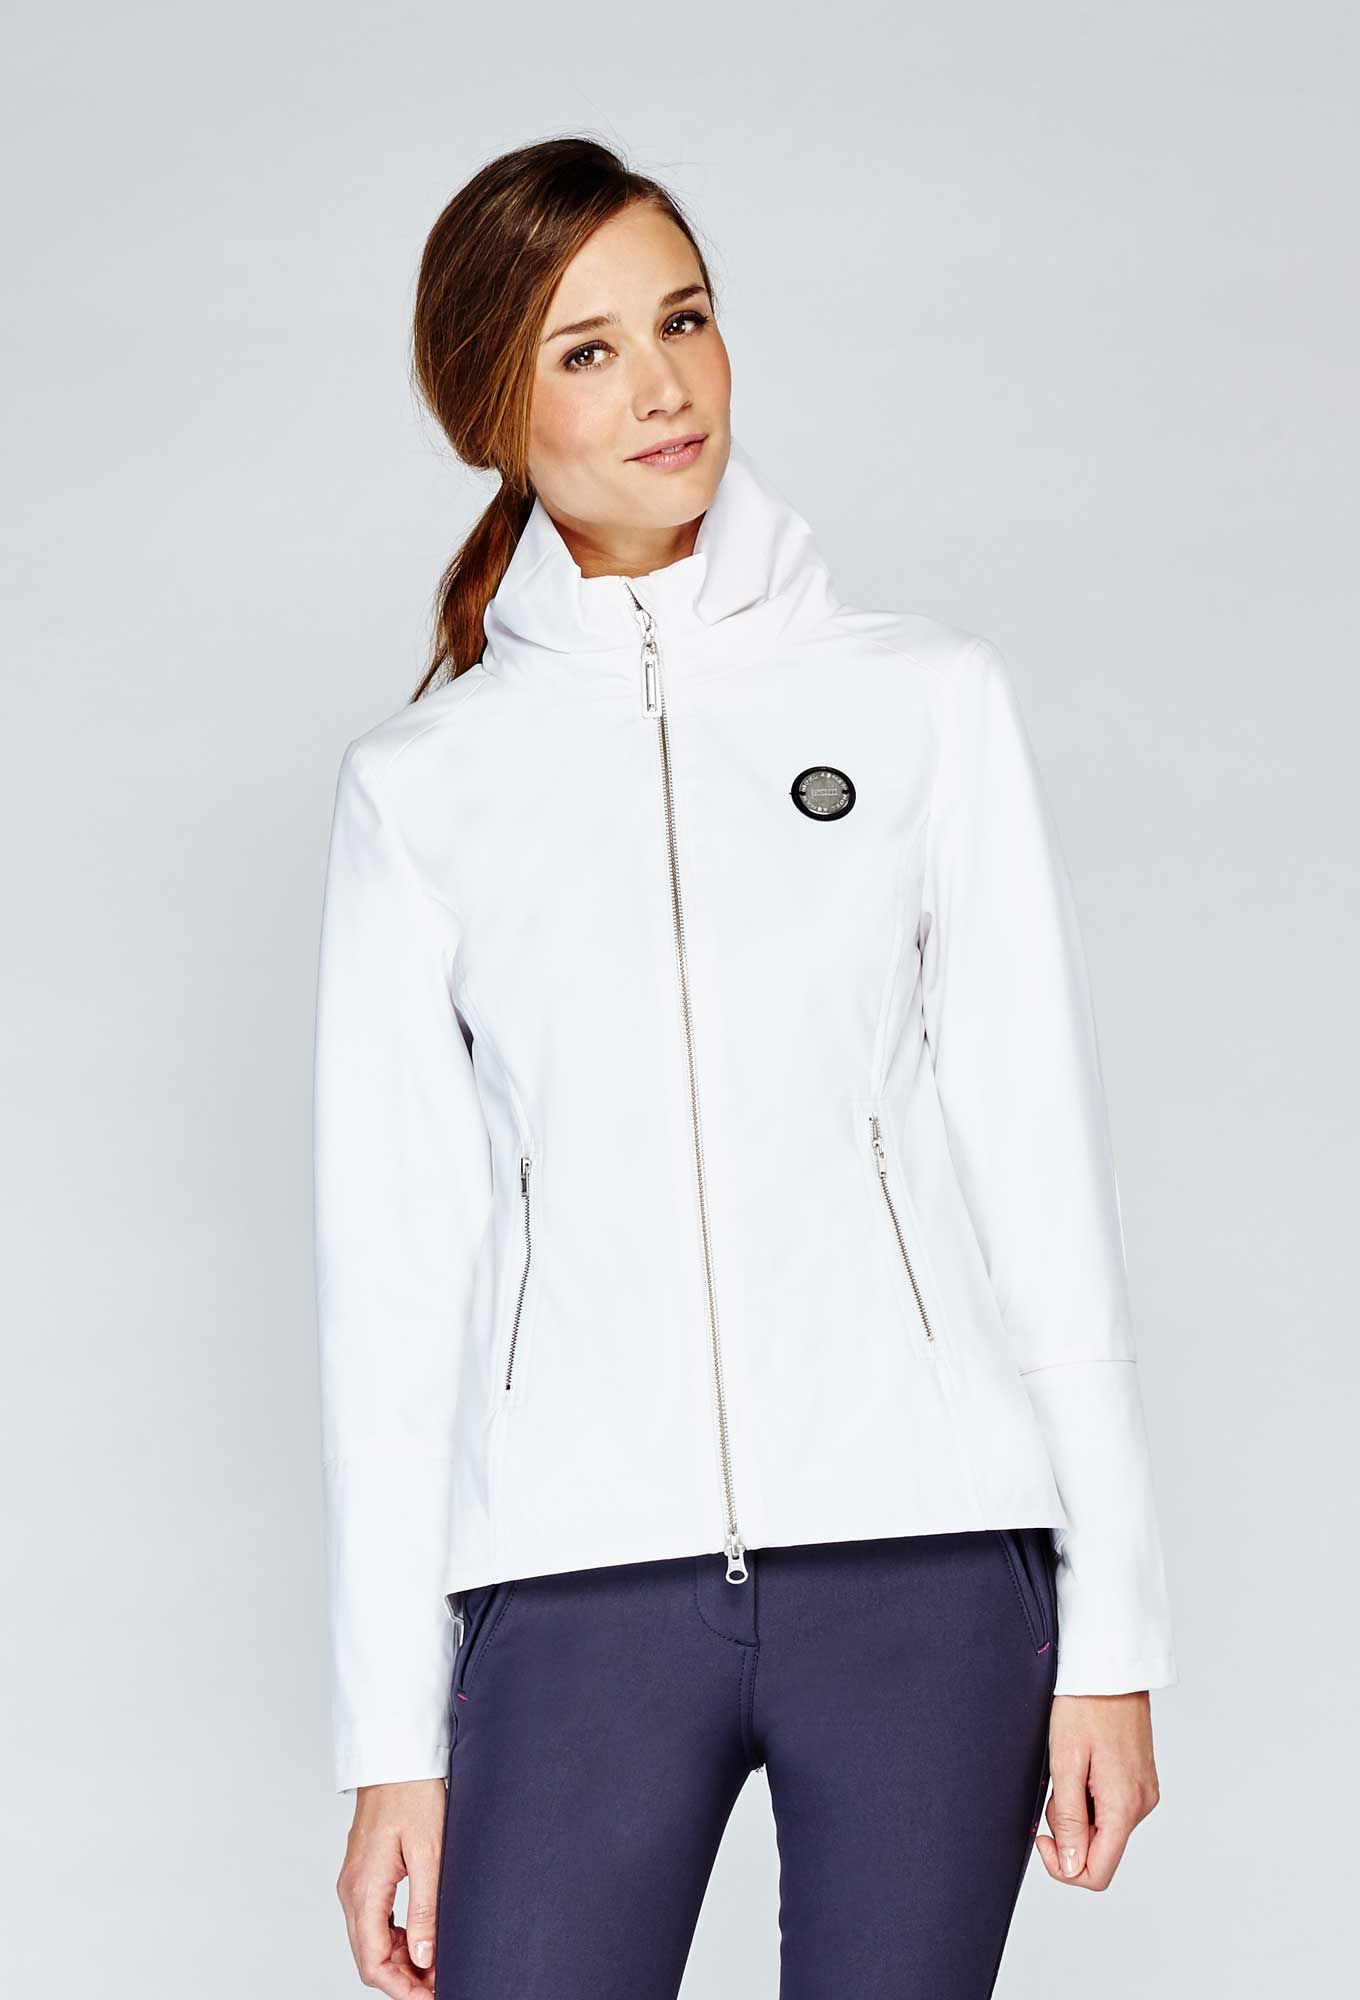 Tofino Jacket Equestrian Outfits Riding Outfit Women Outerwear Jacket [ 2000 x 1360 Pixel ]